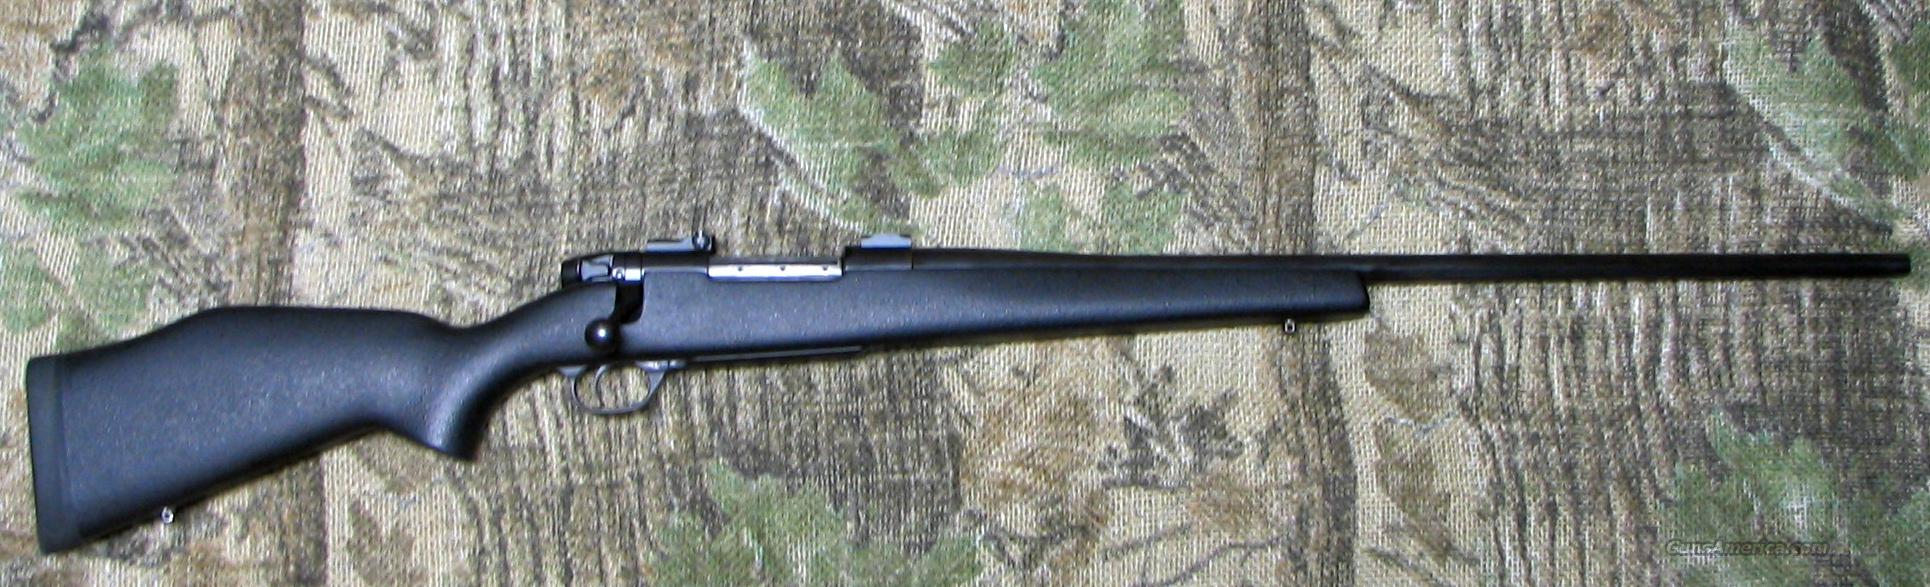 WEATHERBY Mark V, FiberMark Stock, .257 WBY Mag.  Guns > Rifles > Weatherby Rifles > Sporting